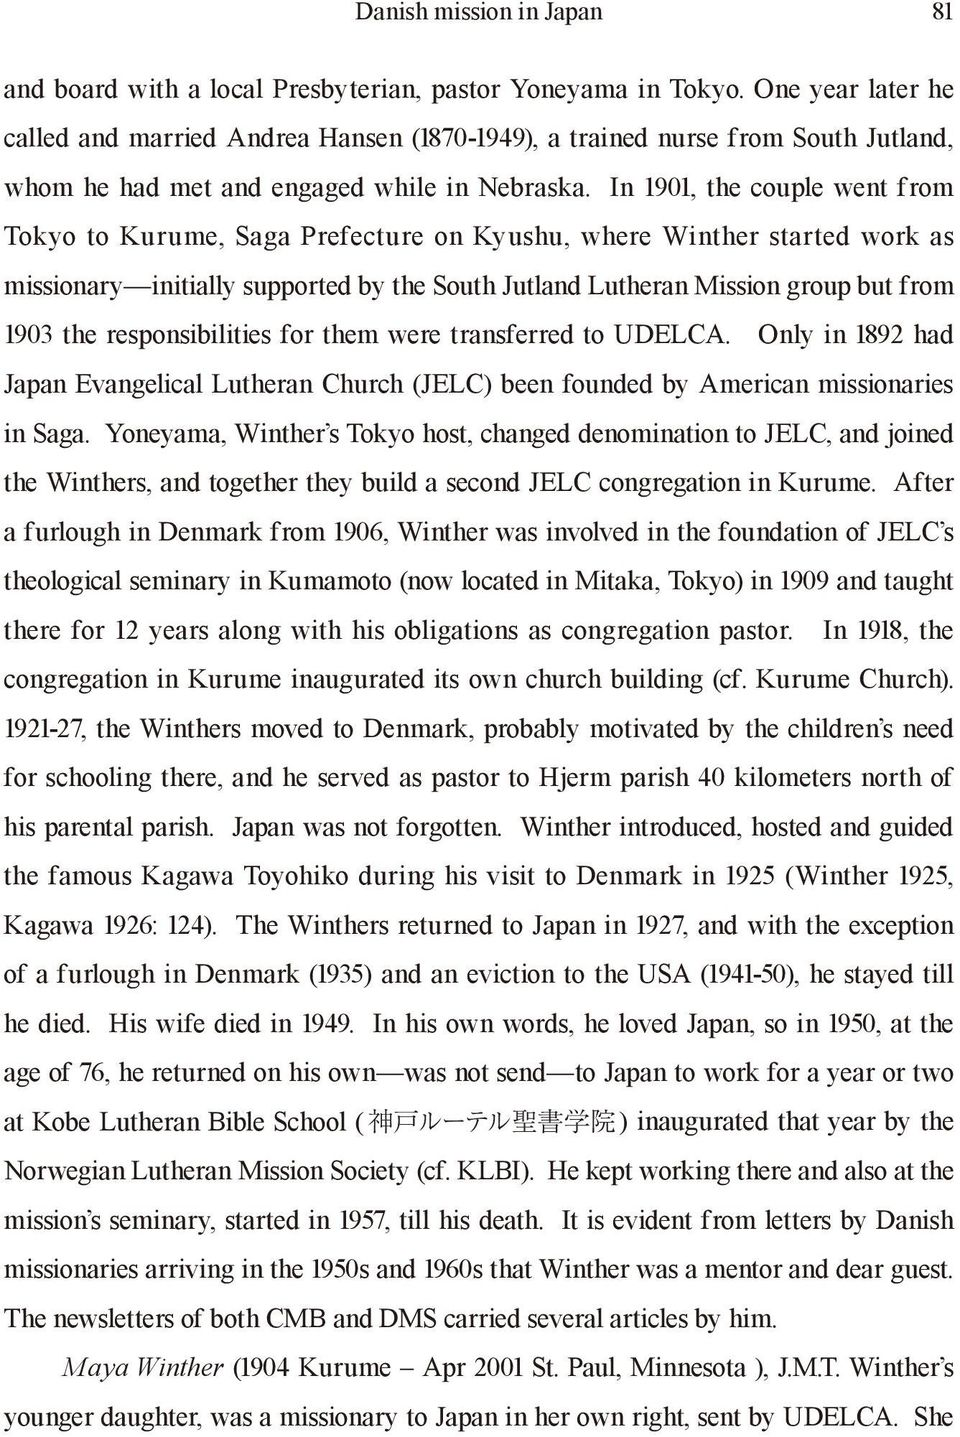 In 1901, the couple went from Tokyo to Kurume, Saga Prefecture on Kyushu, where Winther started work as missionary initially supported by the South Jutland Lutheran Mission group but from 1903 the